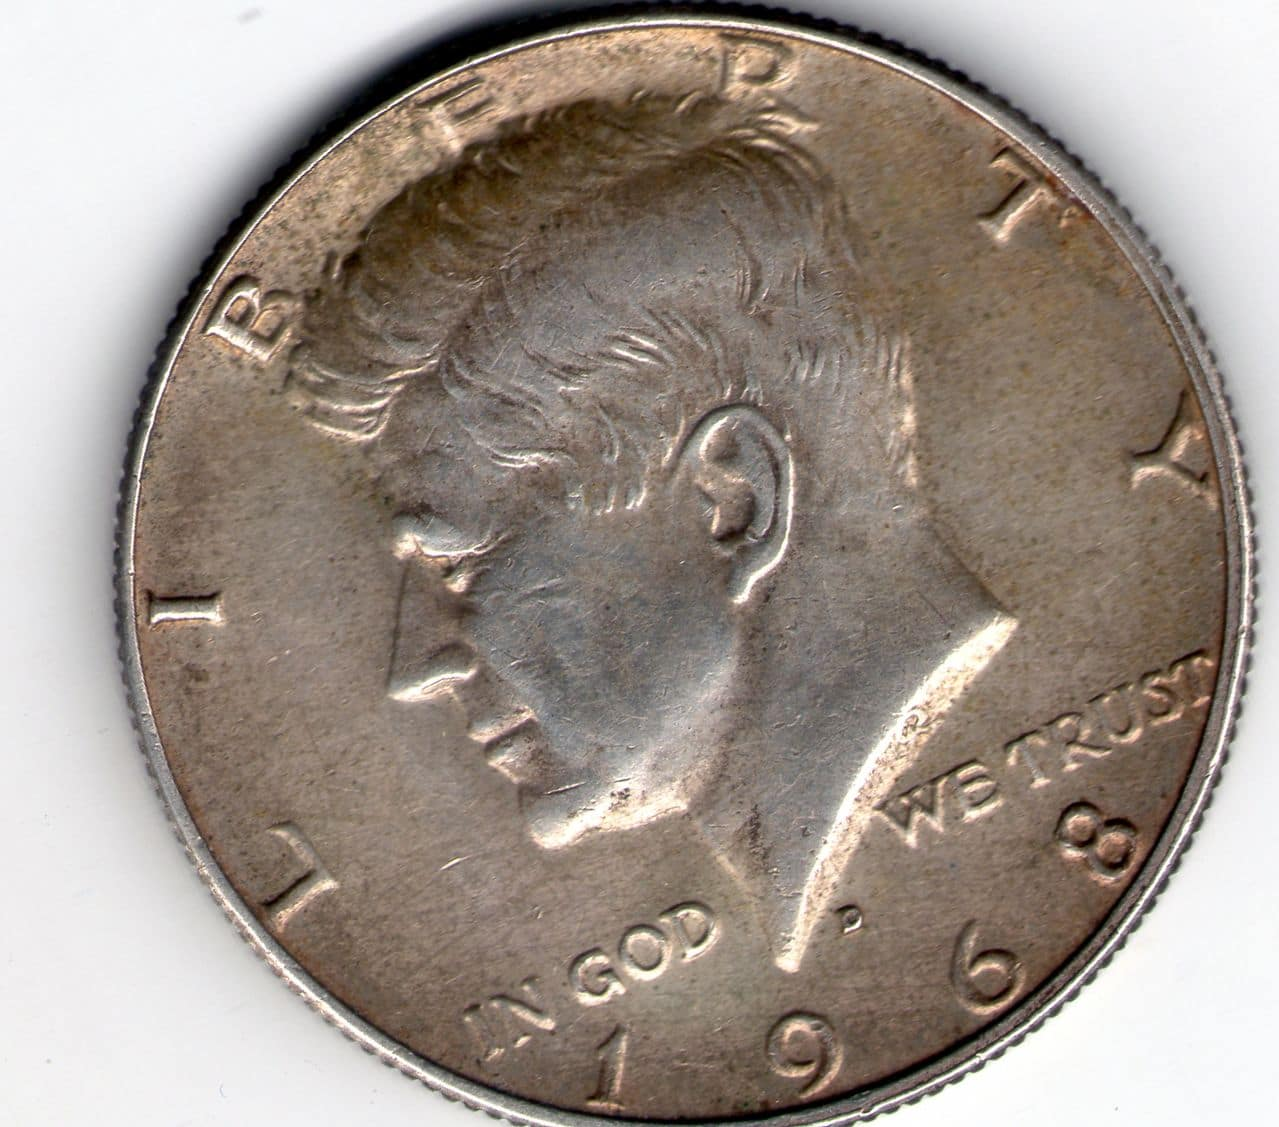 1/2 Dollar Kennedy. Estados Unidos. 1968. Half_dollar_anv